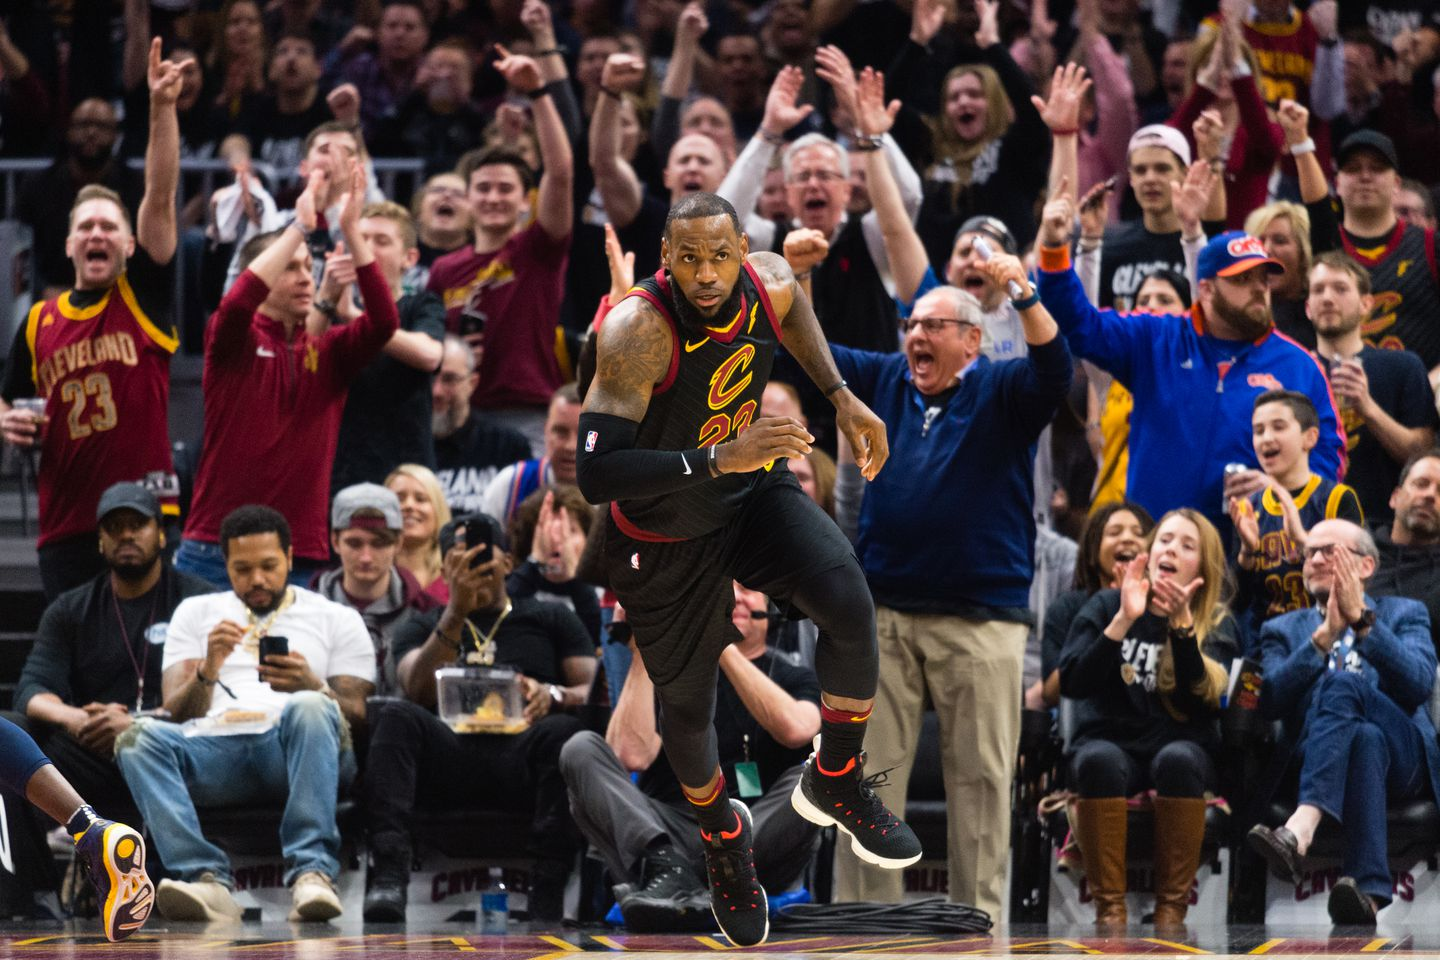 086b5be914e8 LeBron James gave the home crowd lots to cheer about as the Cavaliers  knocked of the